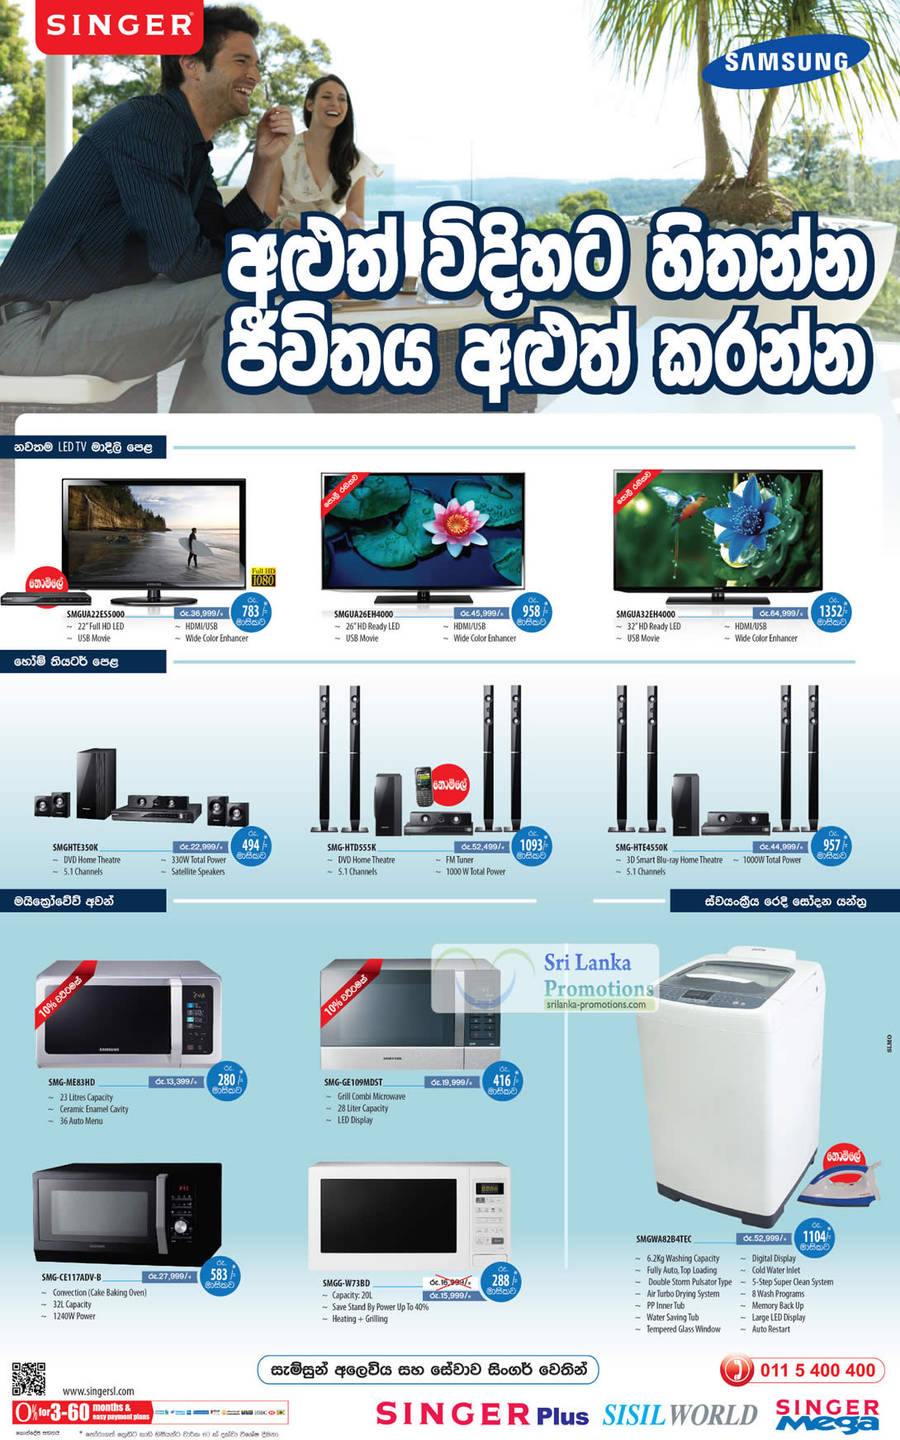 samsung led tv ua26eh4000 jan 2016 sri lanka promotions. Black Bedroom Furniture Sets. Home Design Ideas